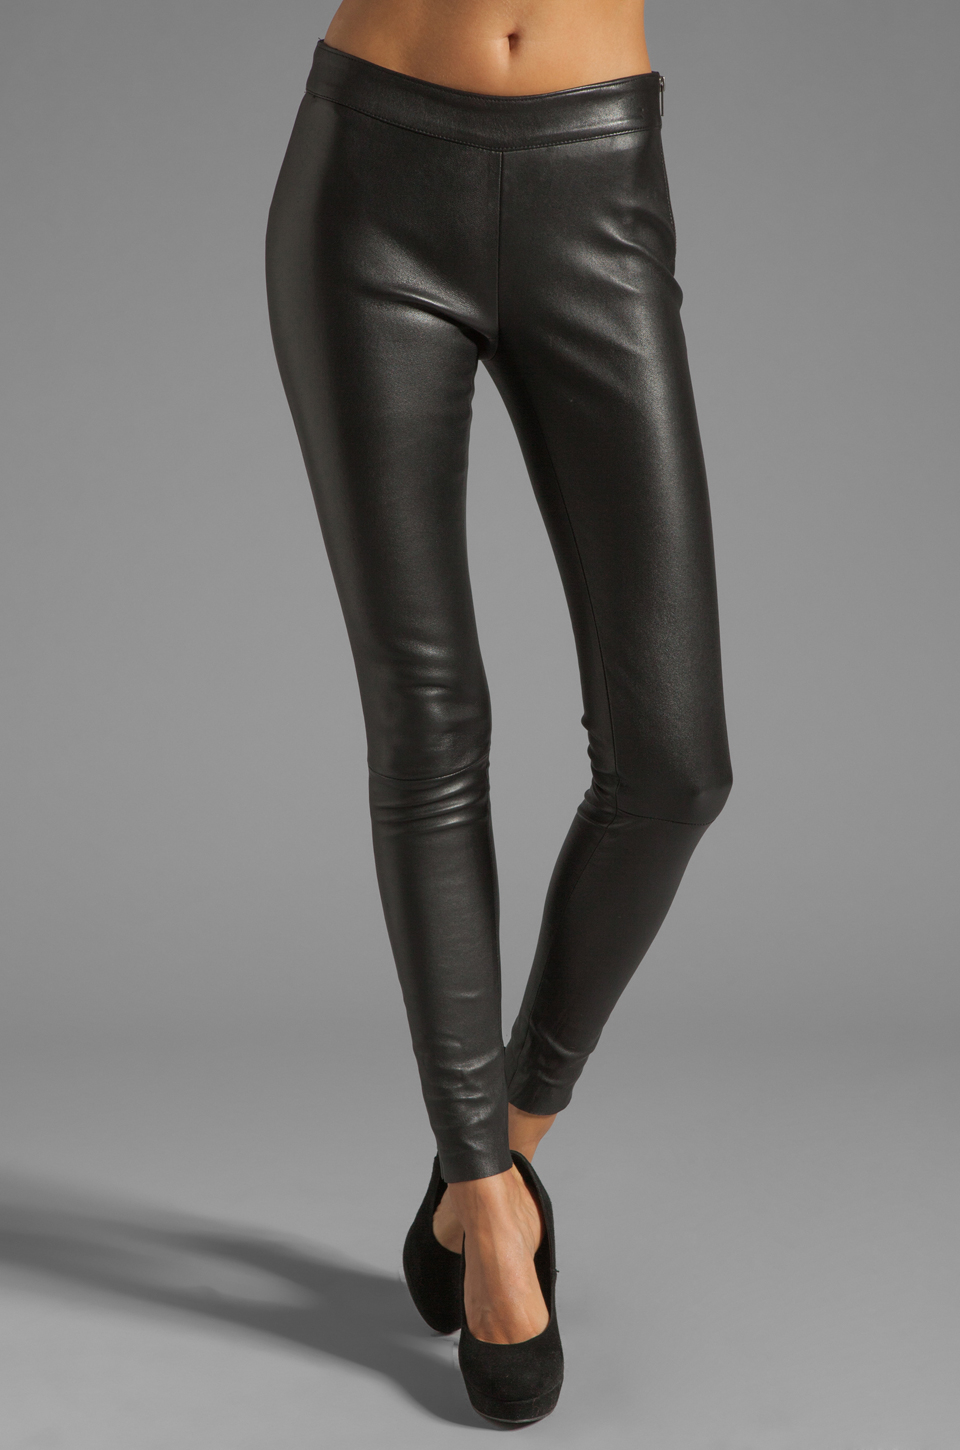 Mackage Leather Leggings